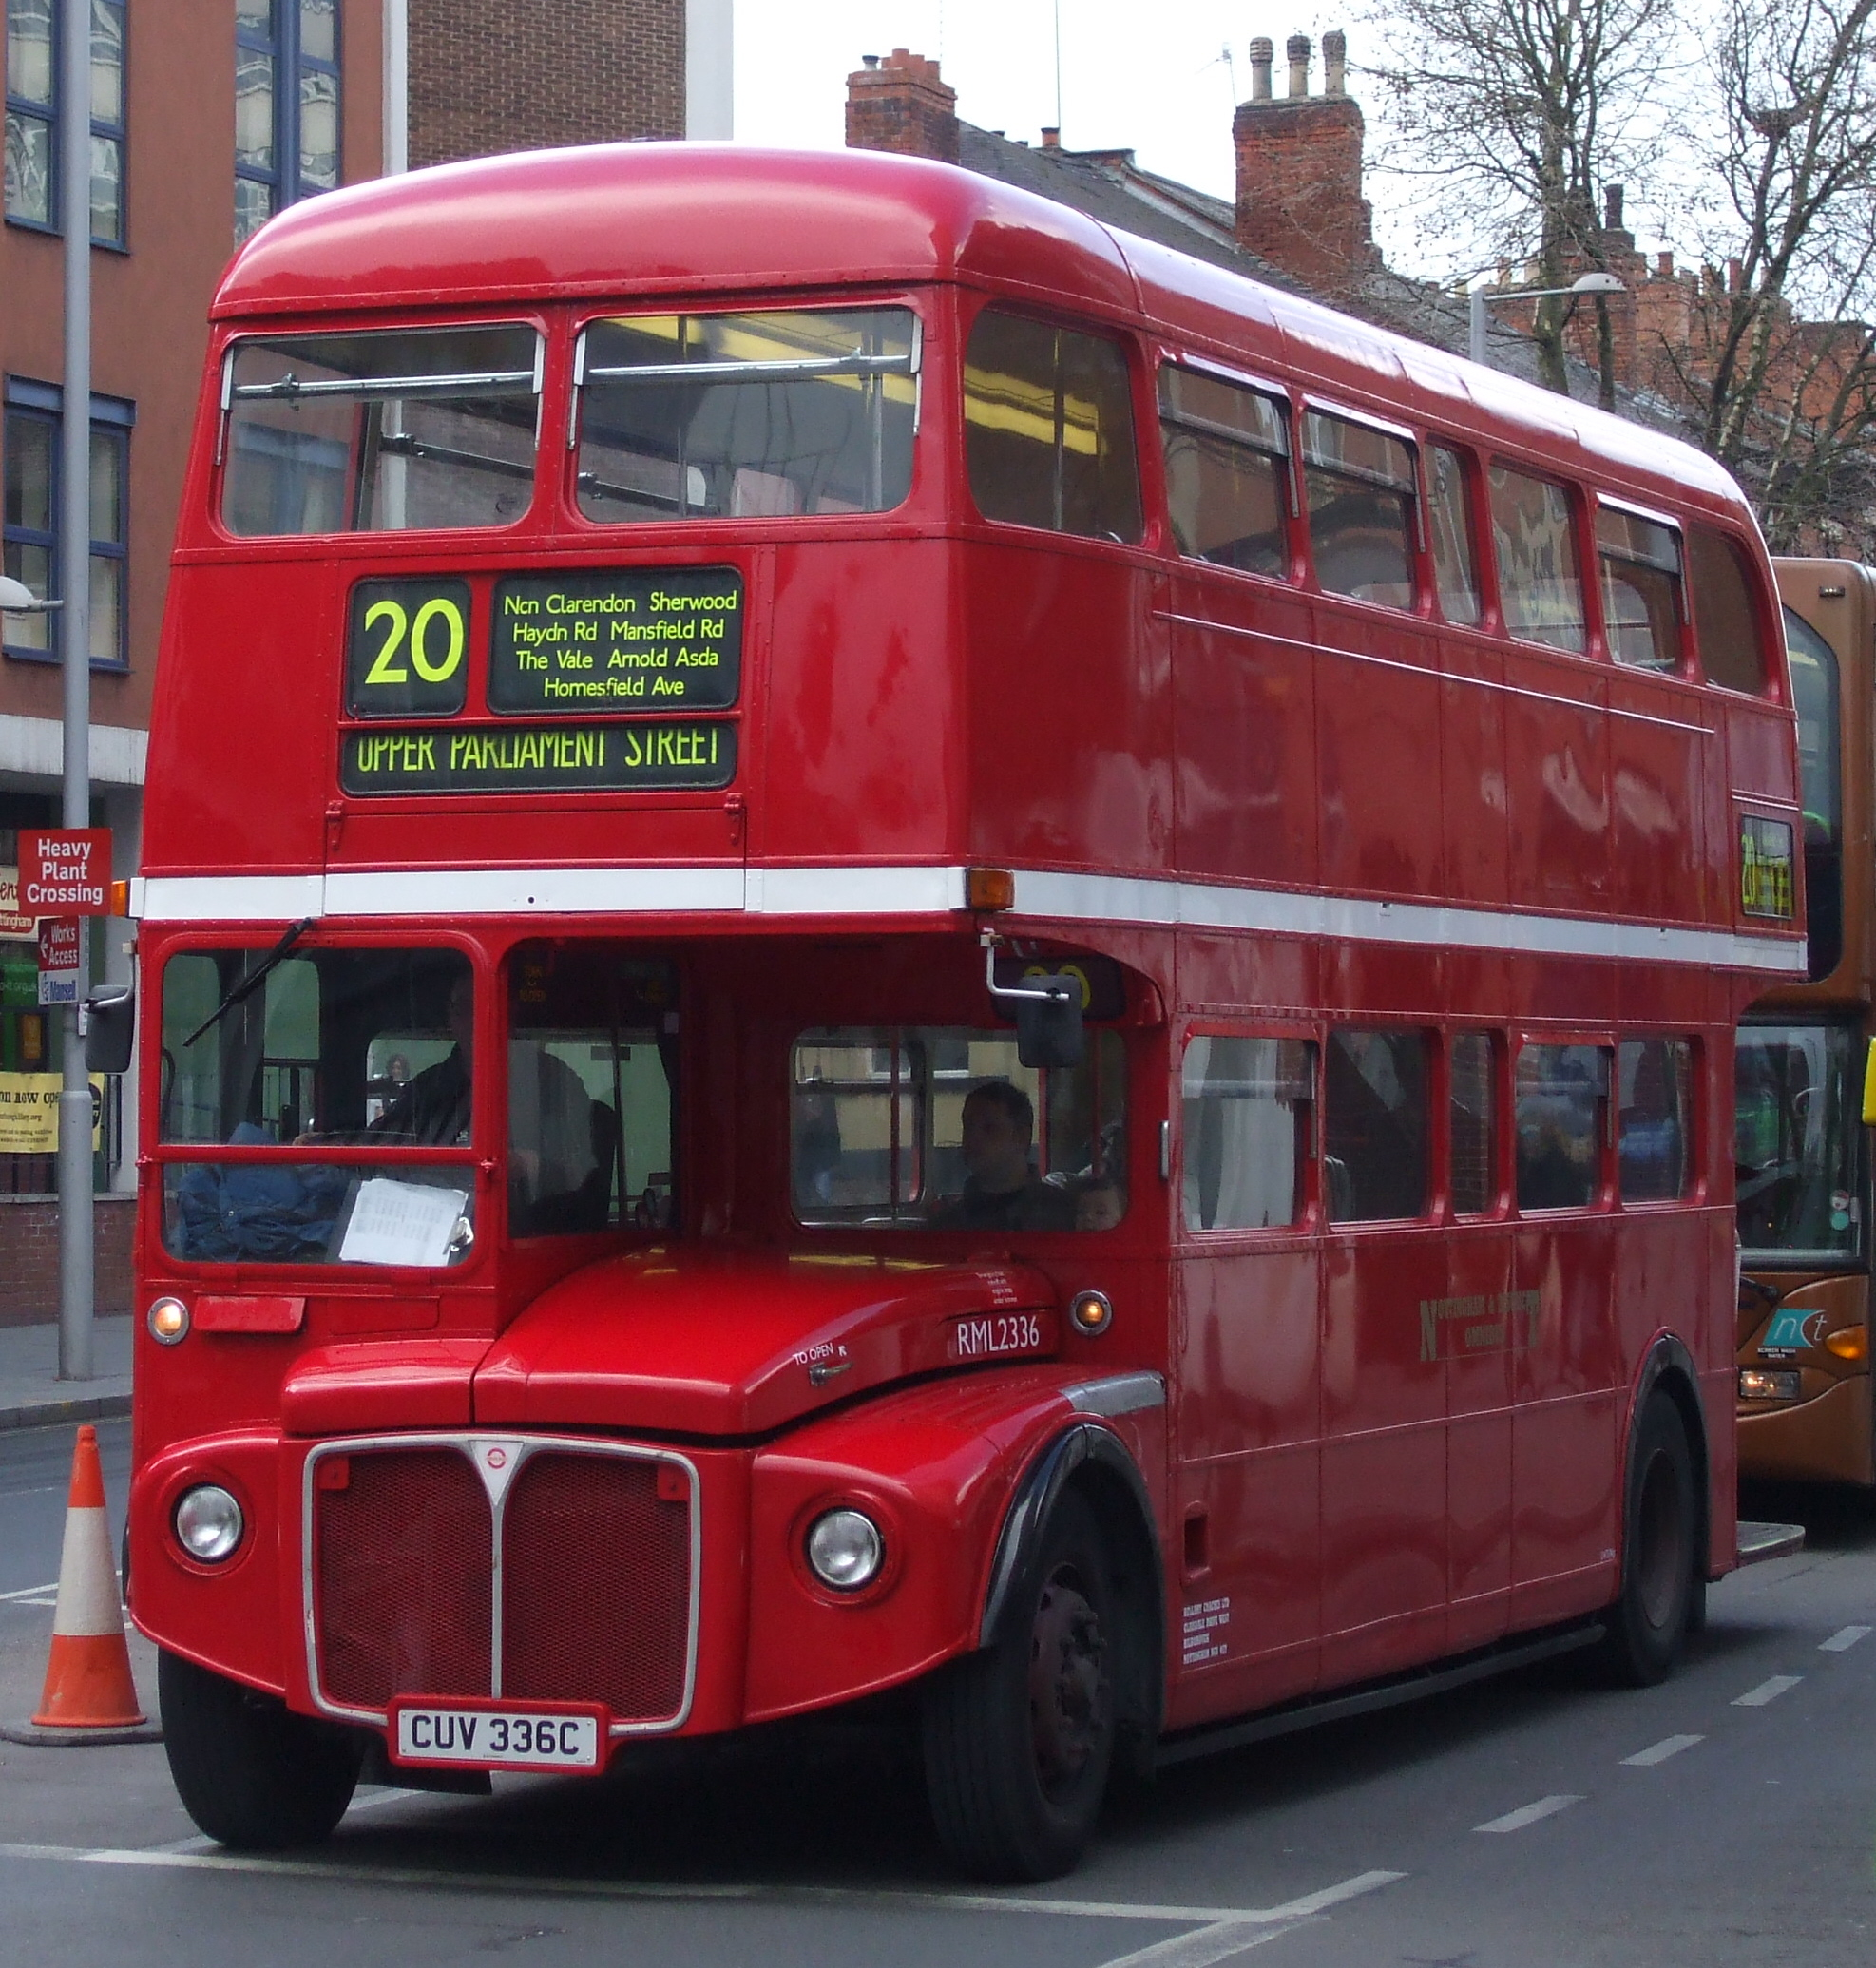 File:Nottingham & District Omnibus Routemaster bus RML2336 ...